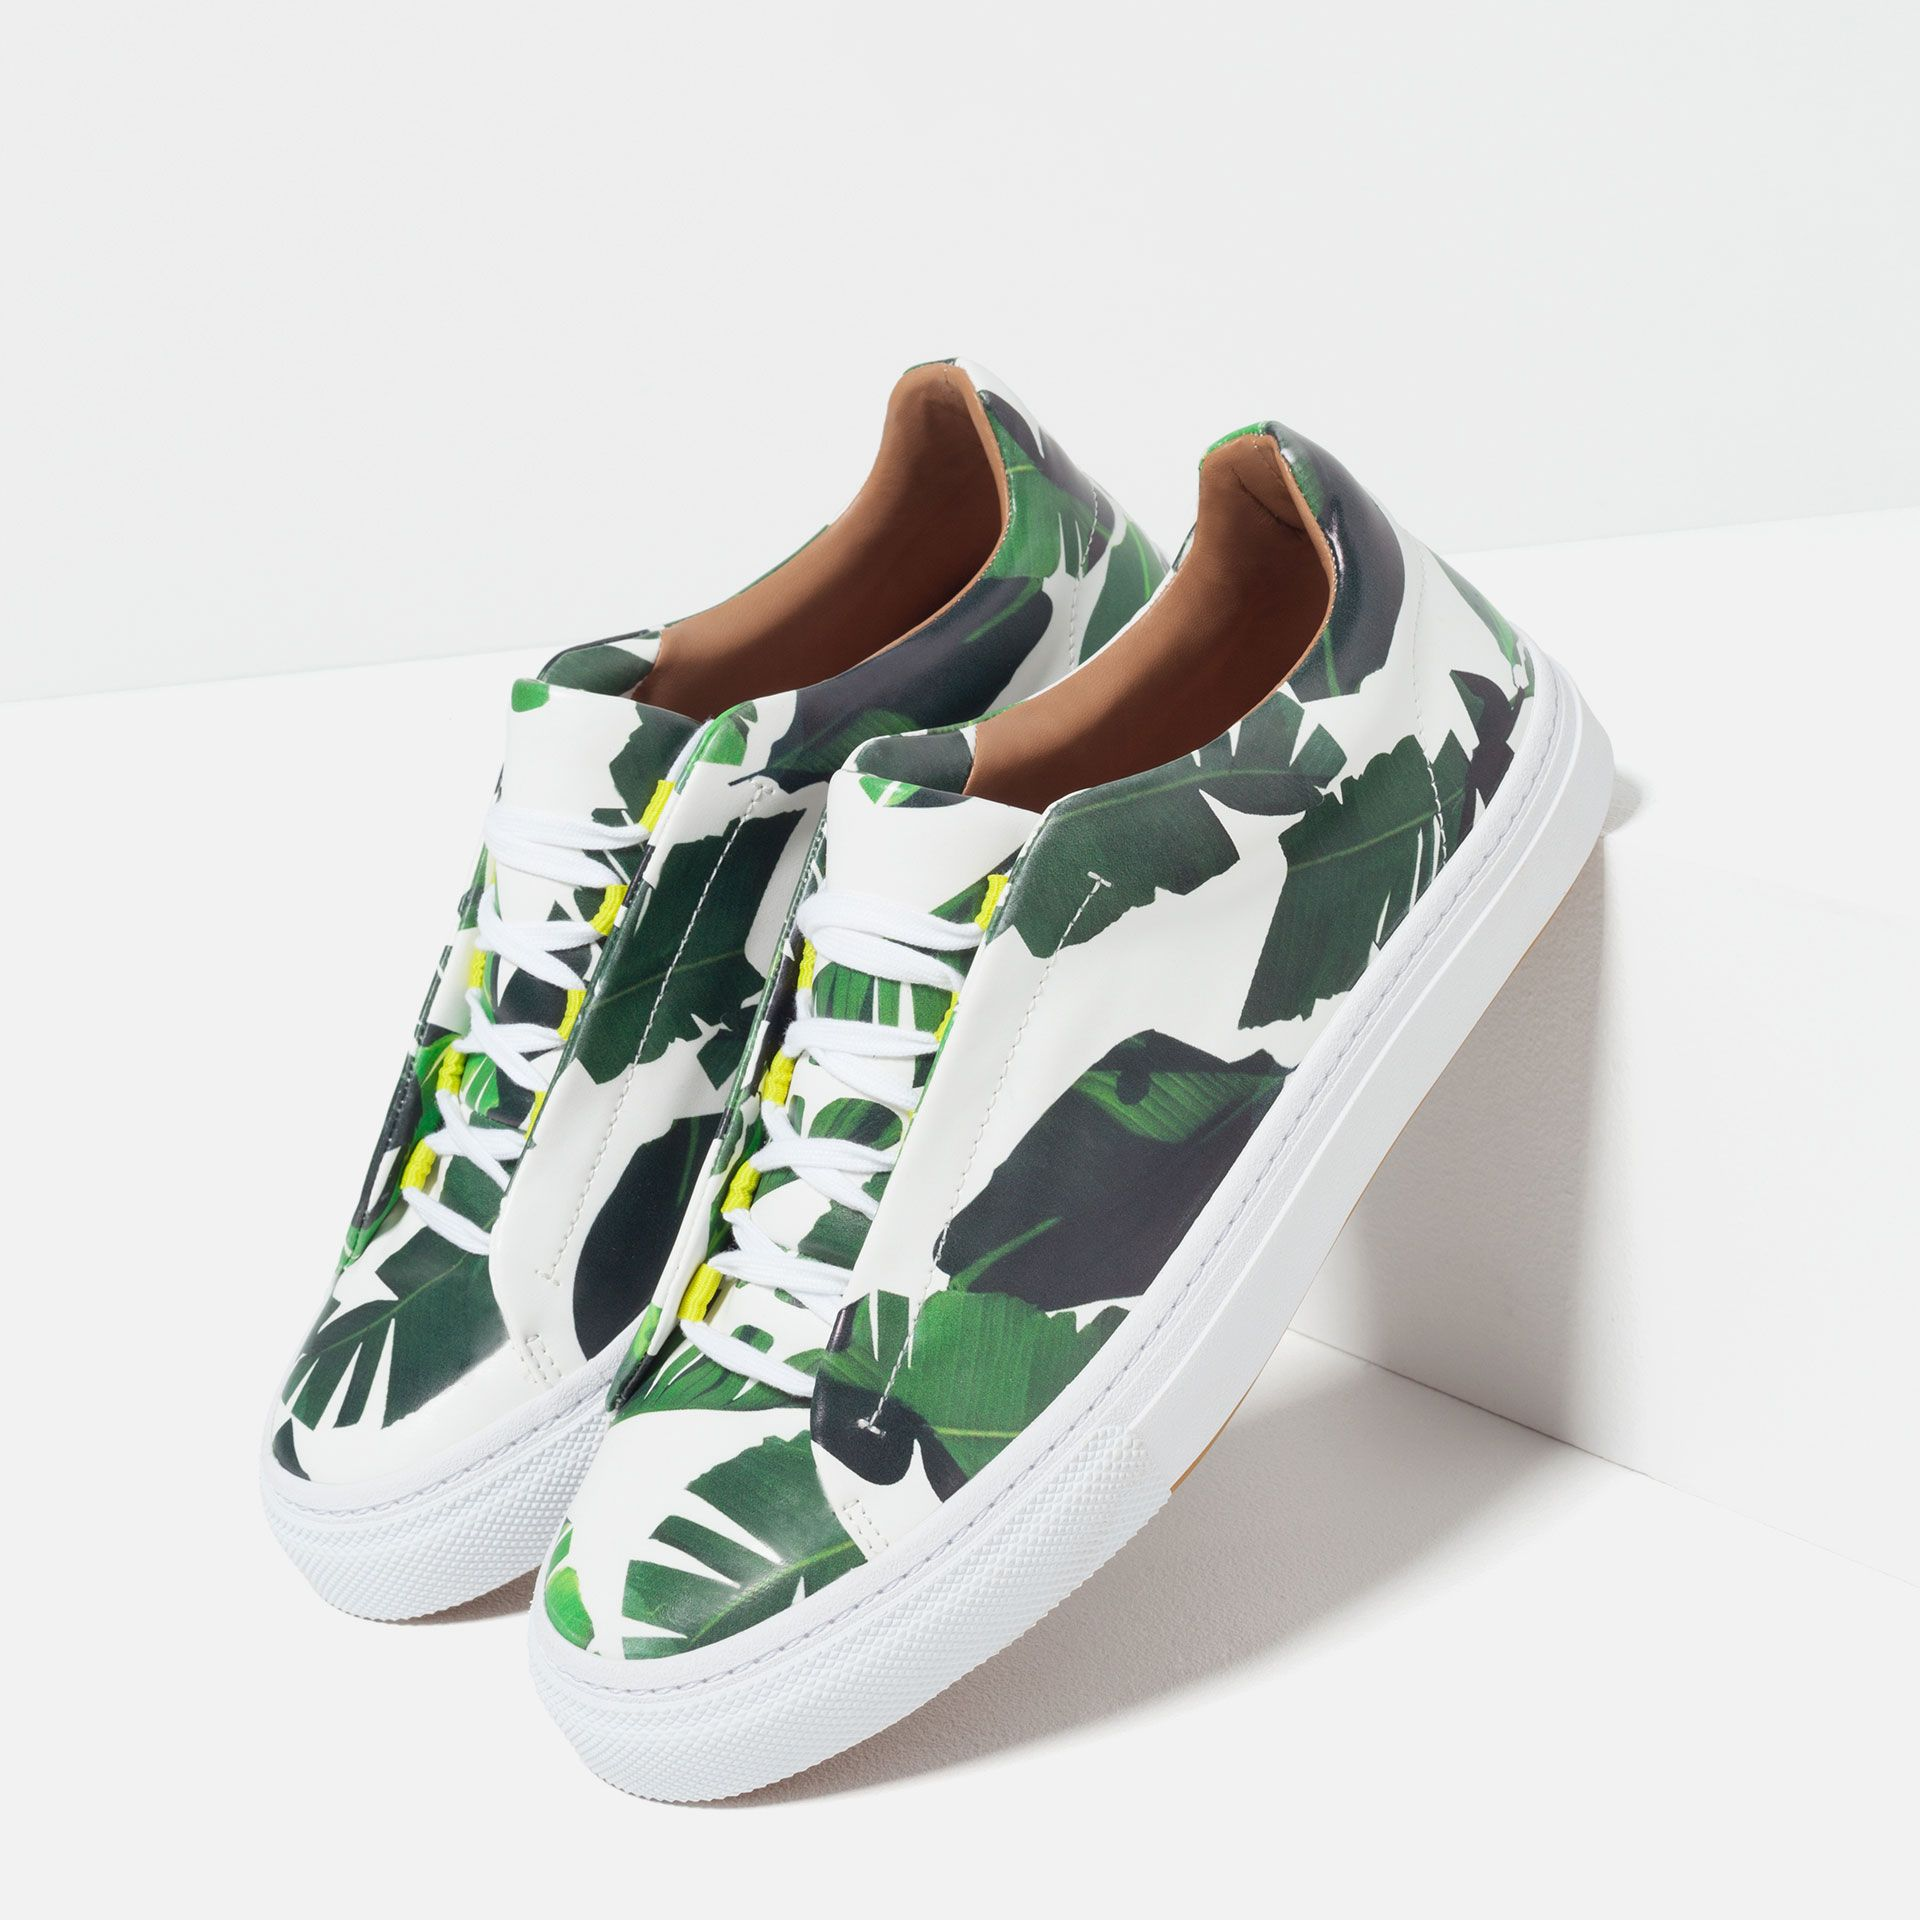 Palm Tree Leaves Breathable Fashion Sneakers Running Shoes Slip-On Loafers Classic Shoes